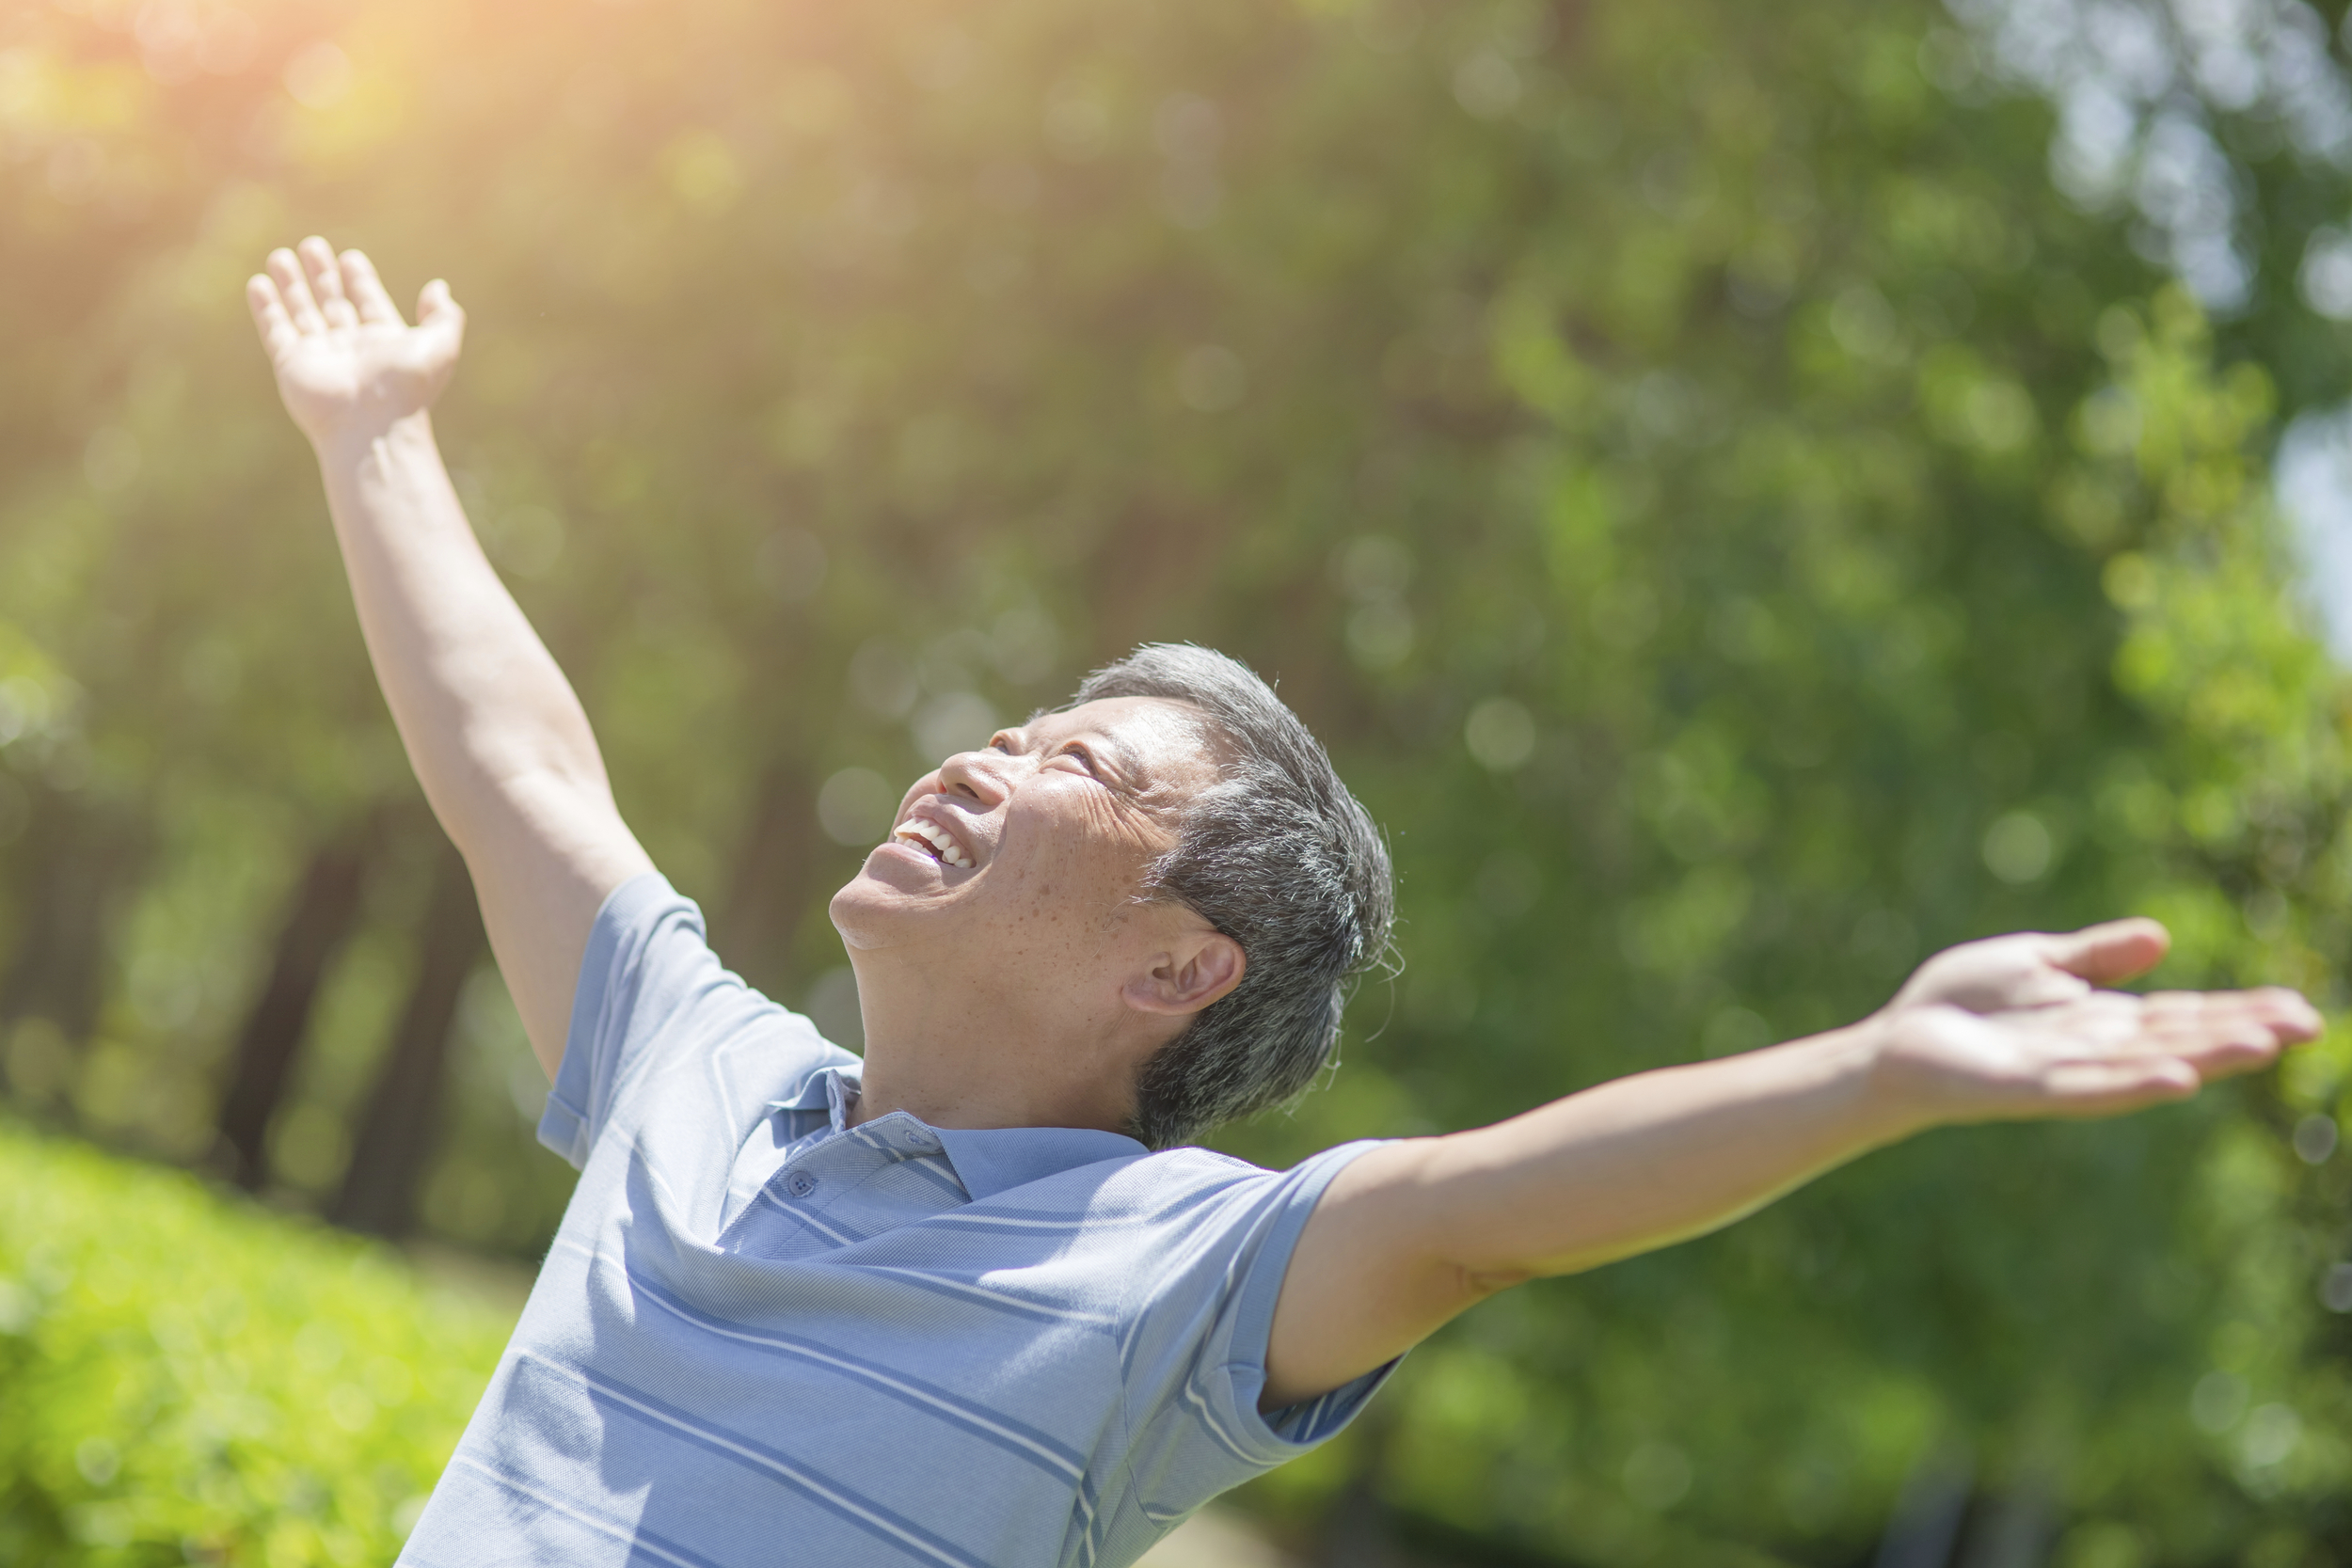 Man with raised arms, smiling, looking up at sky.